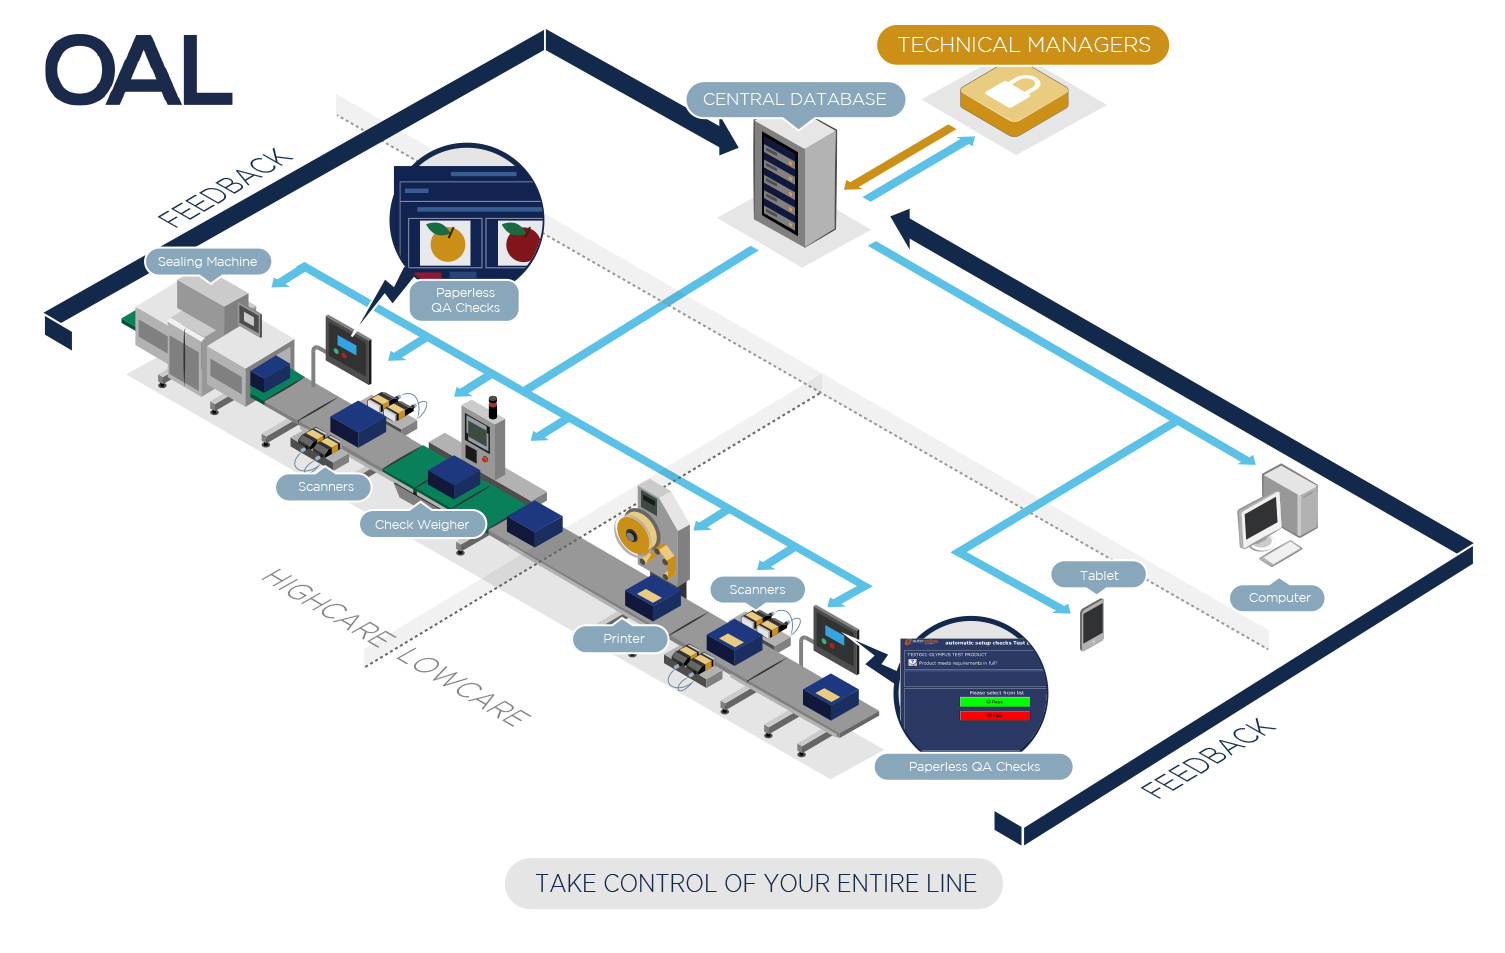 Control Your Packaging Line - WITH OAL CONNECTED